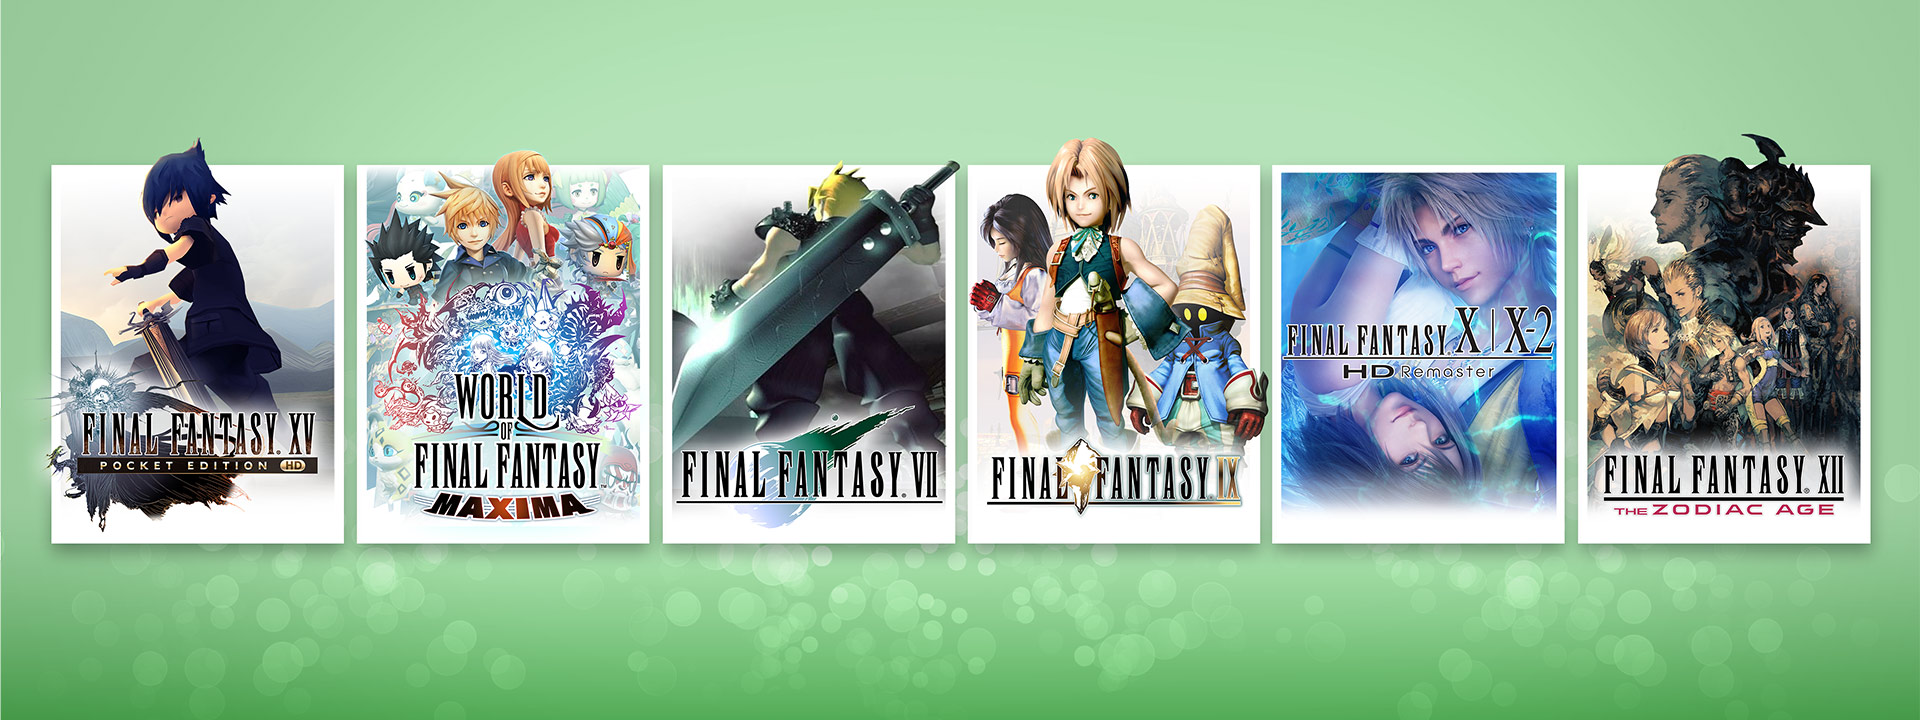 Doosafbeeldingen voor FINAL FANTASY XV POCKET EDITION HD, WORLD OF FINAL FANTASY MAXIMA, FINAL FANTASY VII, FINAL FANTASY IX, FINAL FANTASY X | X-2 HD Remaster en FINAL FANTASY XII THE ZODIAC AGE